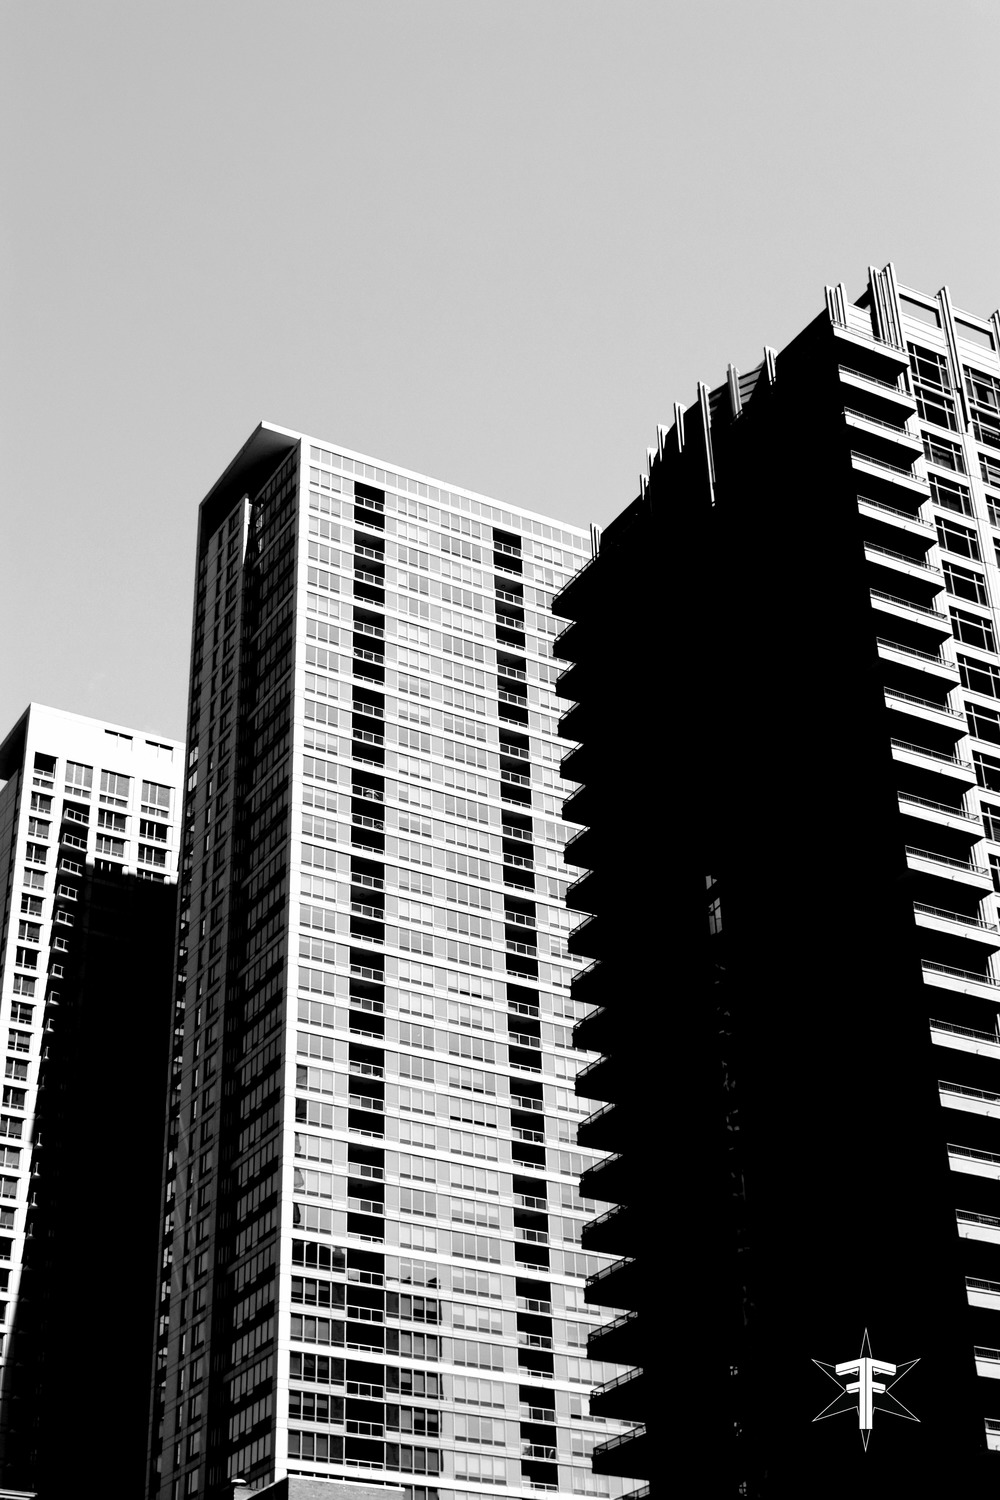 chicago architecture eric formato photography design arquitectura architettura buildings skyscraper skyscrapers-73.jpg